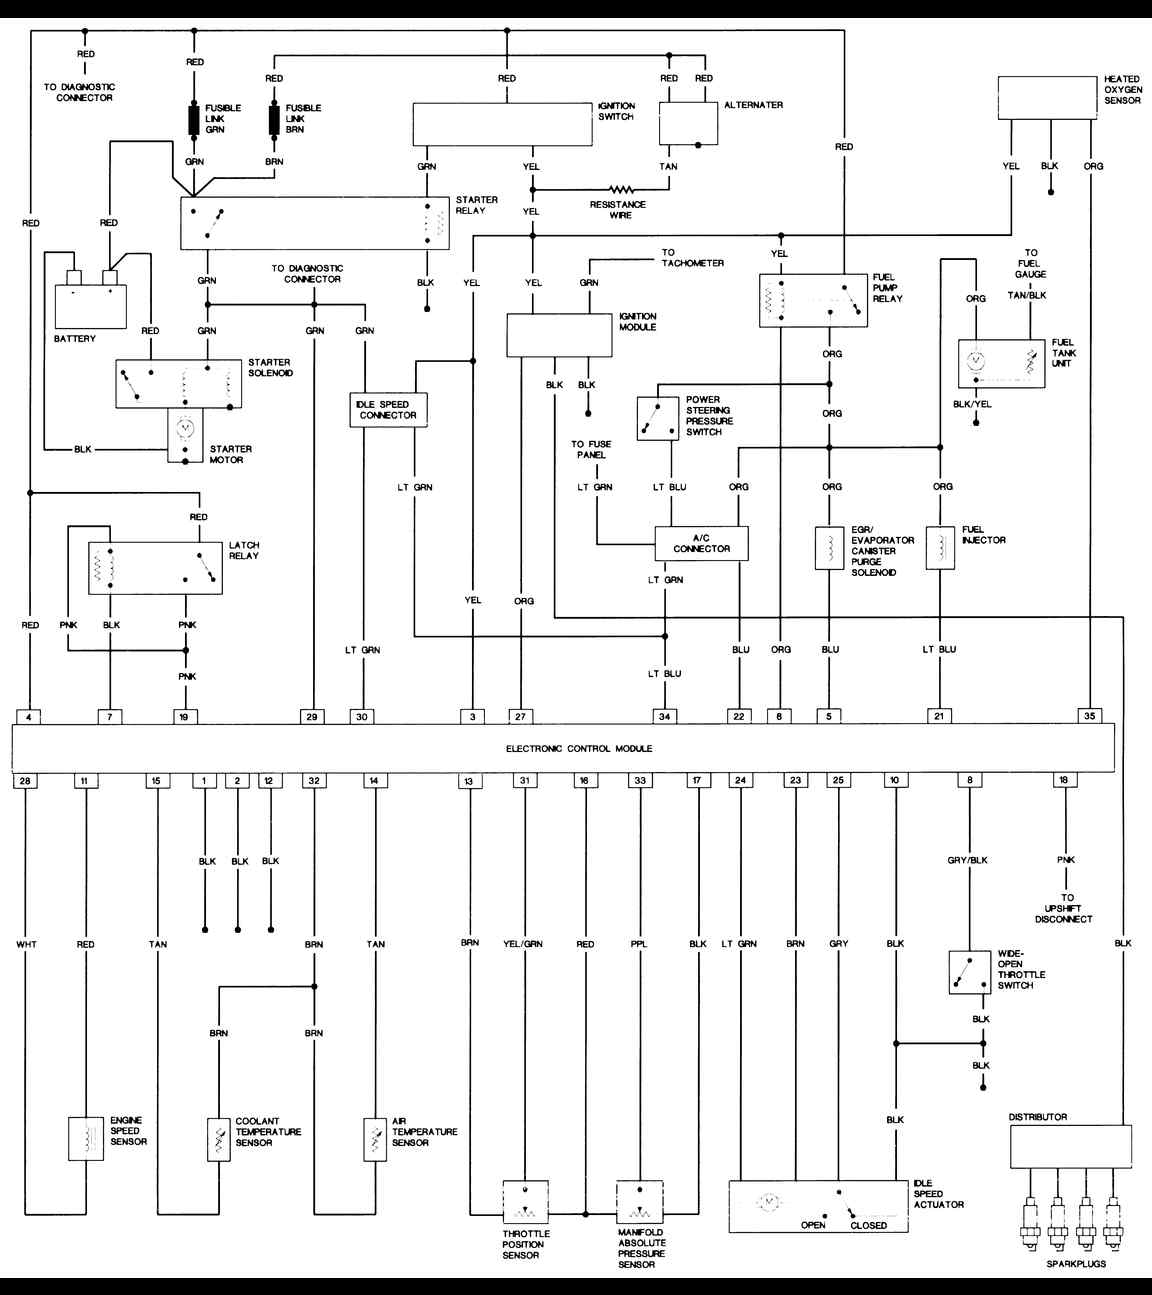 quiq battery charger wiring diagram 35 wiring diagram